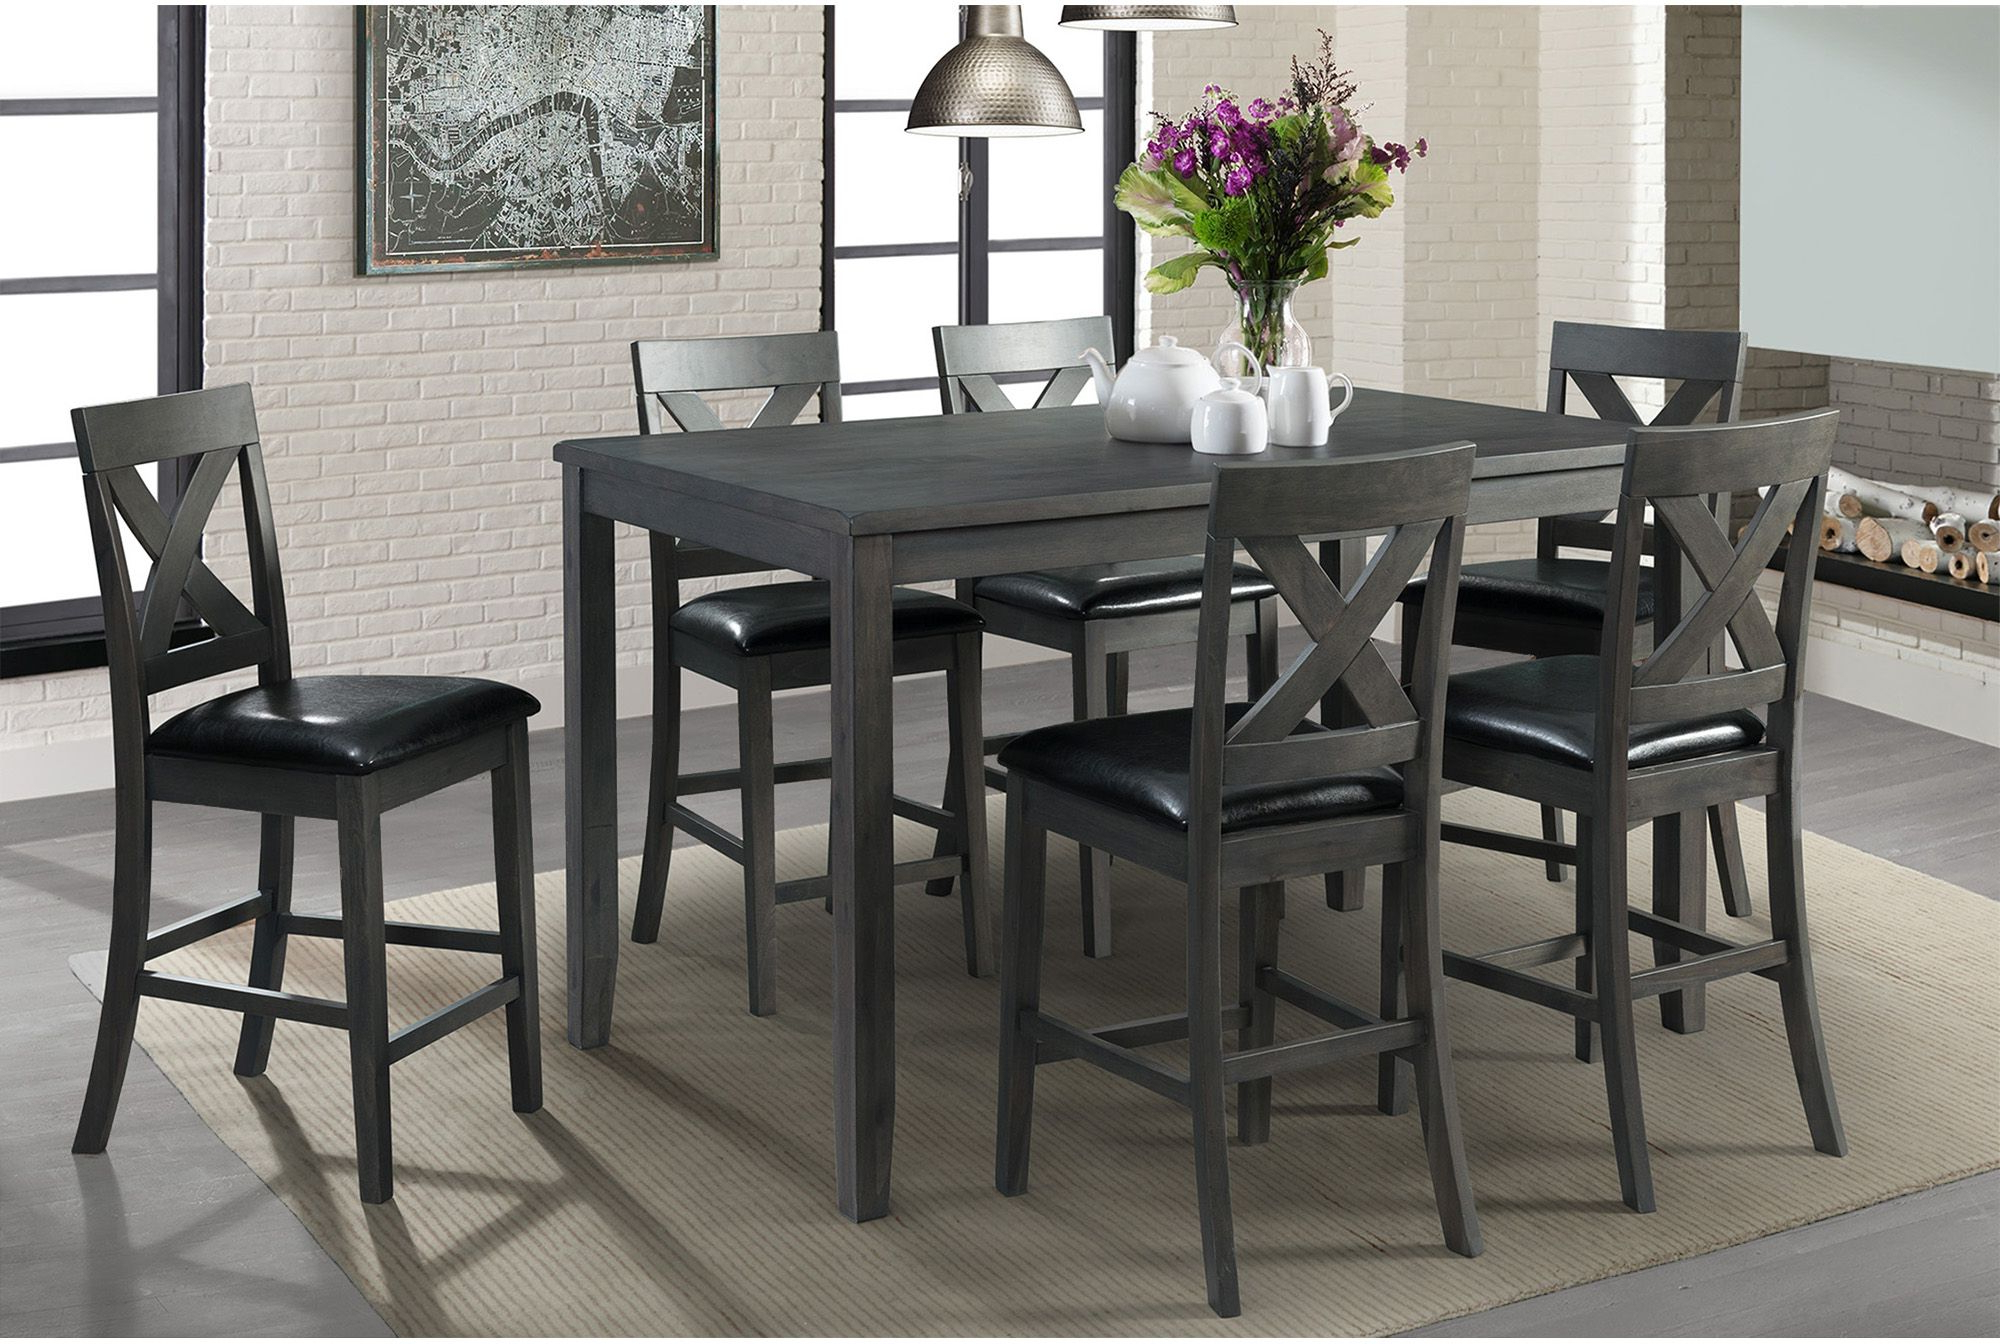 Alexa Gray 7 Piece Counter Height Dining Set From Elements Furniture Within Preferred Kinsler 3 Piece Bistro Sets (View 18 of 25)